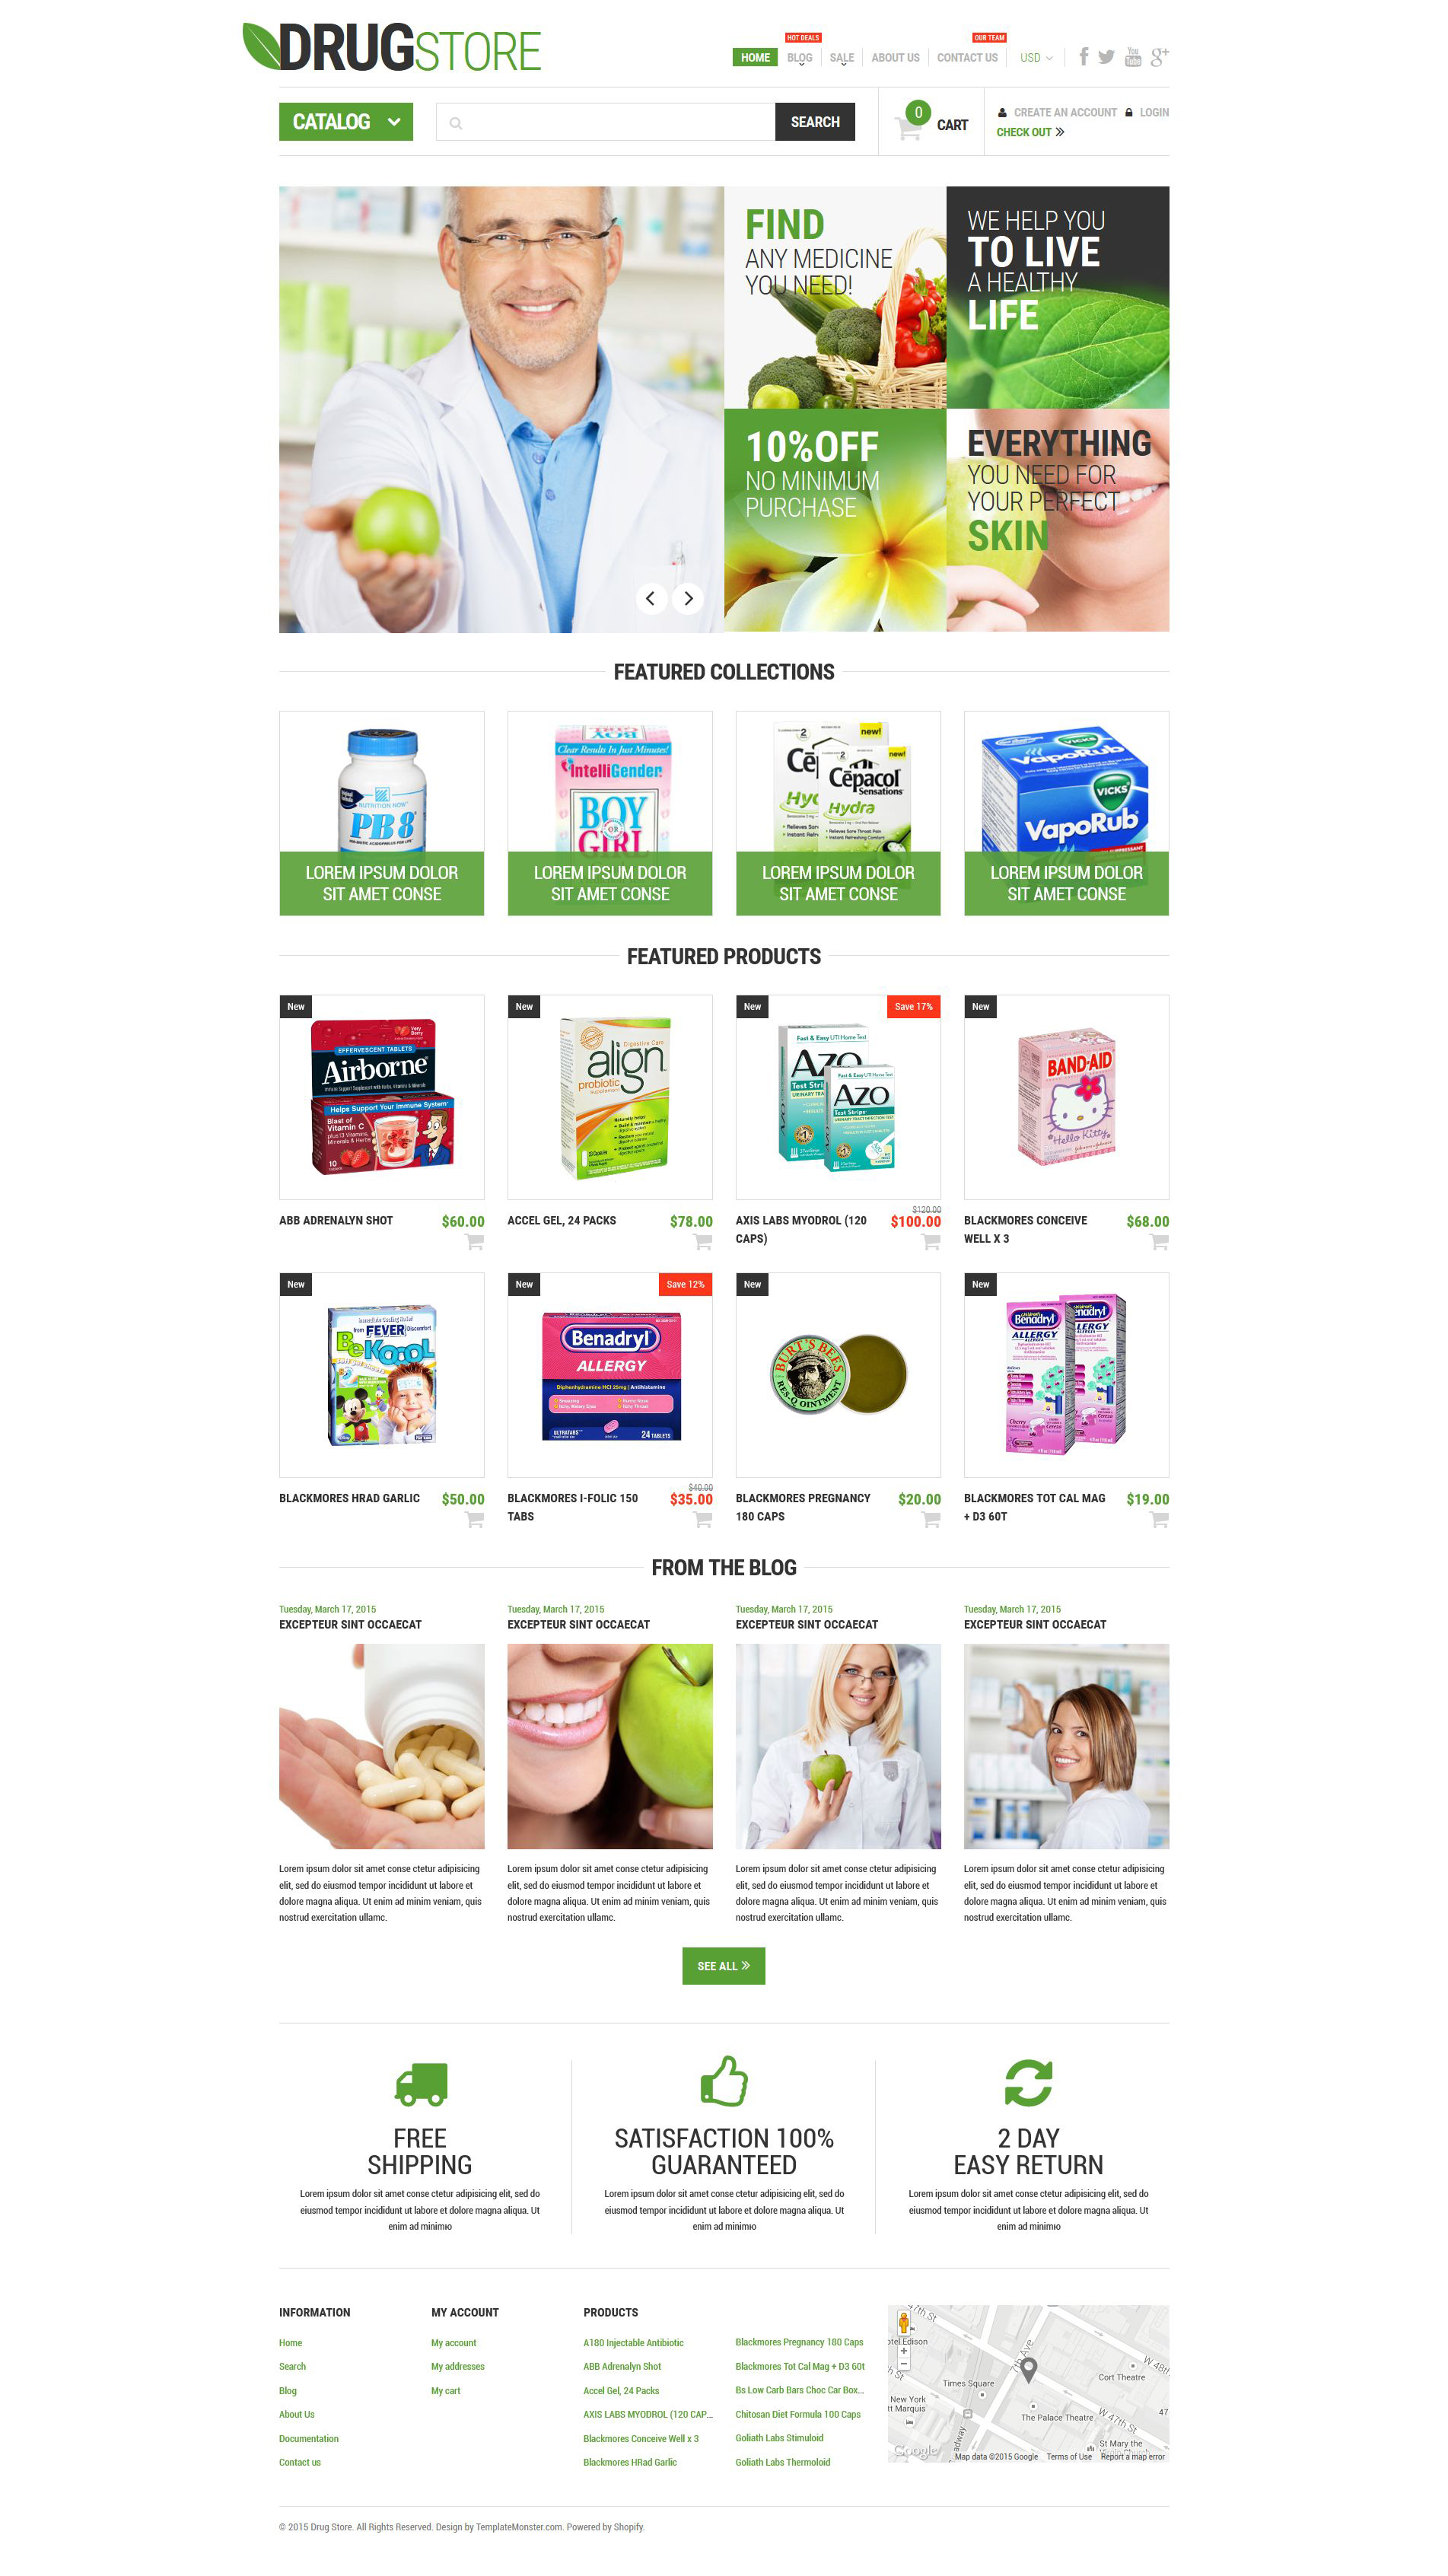 The Drugs Store Shopify Design 53439, one of the best Shopify themes of its kind (medical, most popular), also known as drugs store Shopify template, medicine Shopify template, cure Shopify template, pills Shopify template, tablets Shopify template, pharmacy Shopify template, online disease Shopify template, medical care Shopify template, capsules Shopify template, ointment Shopify template, medicare Shopify template, prescription Shopify template, vitamins Shopify template, medicaments Shopify template, medical supplies Shopify template, medicines Shopify template, supplements Shopify template, healthy and related with drugs store, medicine, cure, pills, tablets, pharmacy, online disease, medical care, capsules, ointment, medicare, prescription, vitamins, medicaments, medical supplies, medicines, supplements, healthy, etc.